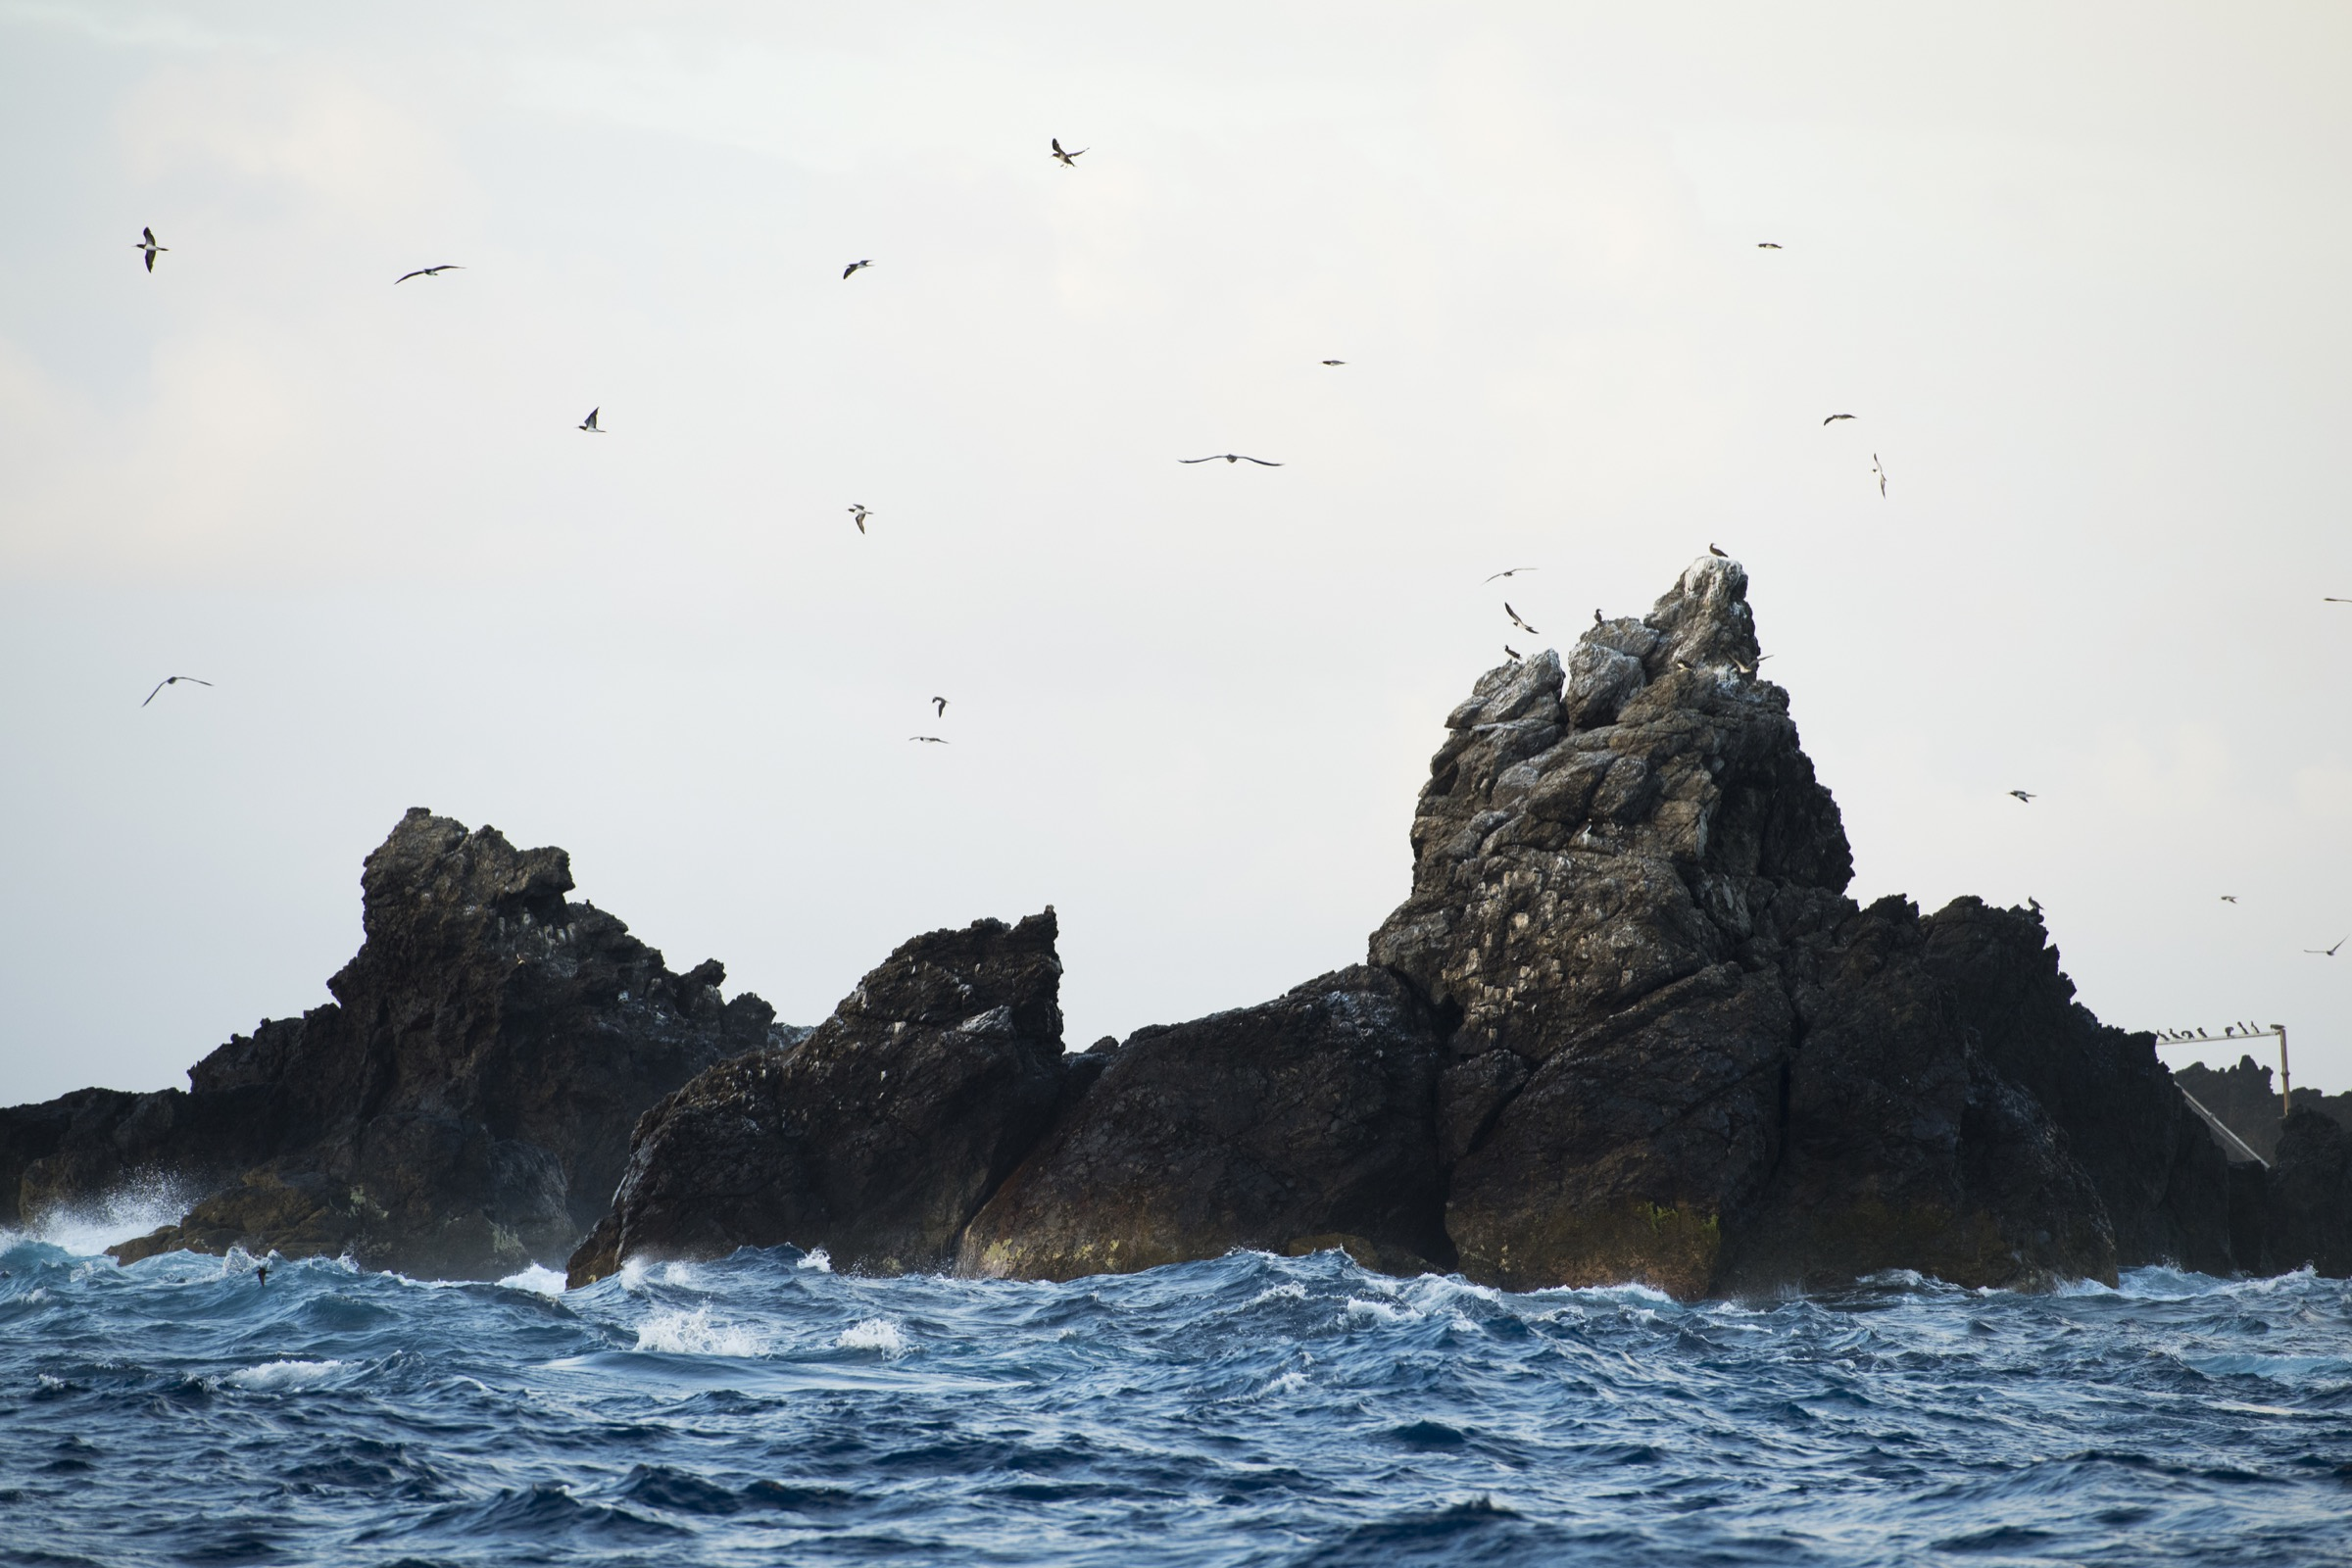 Hundreds of resident brown boobies (Sula leucogaster) circle above Saint Peter and Saint Paul Archipelago, a tiny set of islets in the middle of the Atlantic Ocean. Photograph by Novus Select